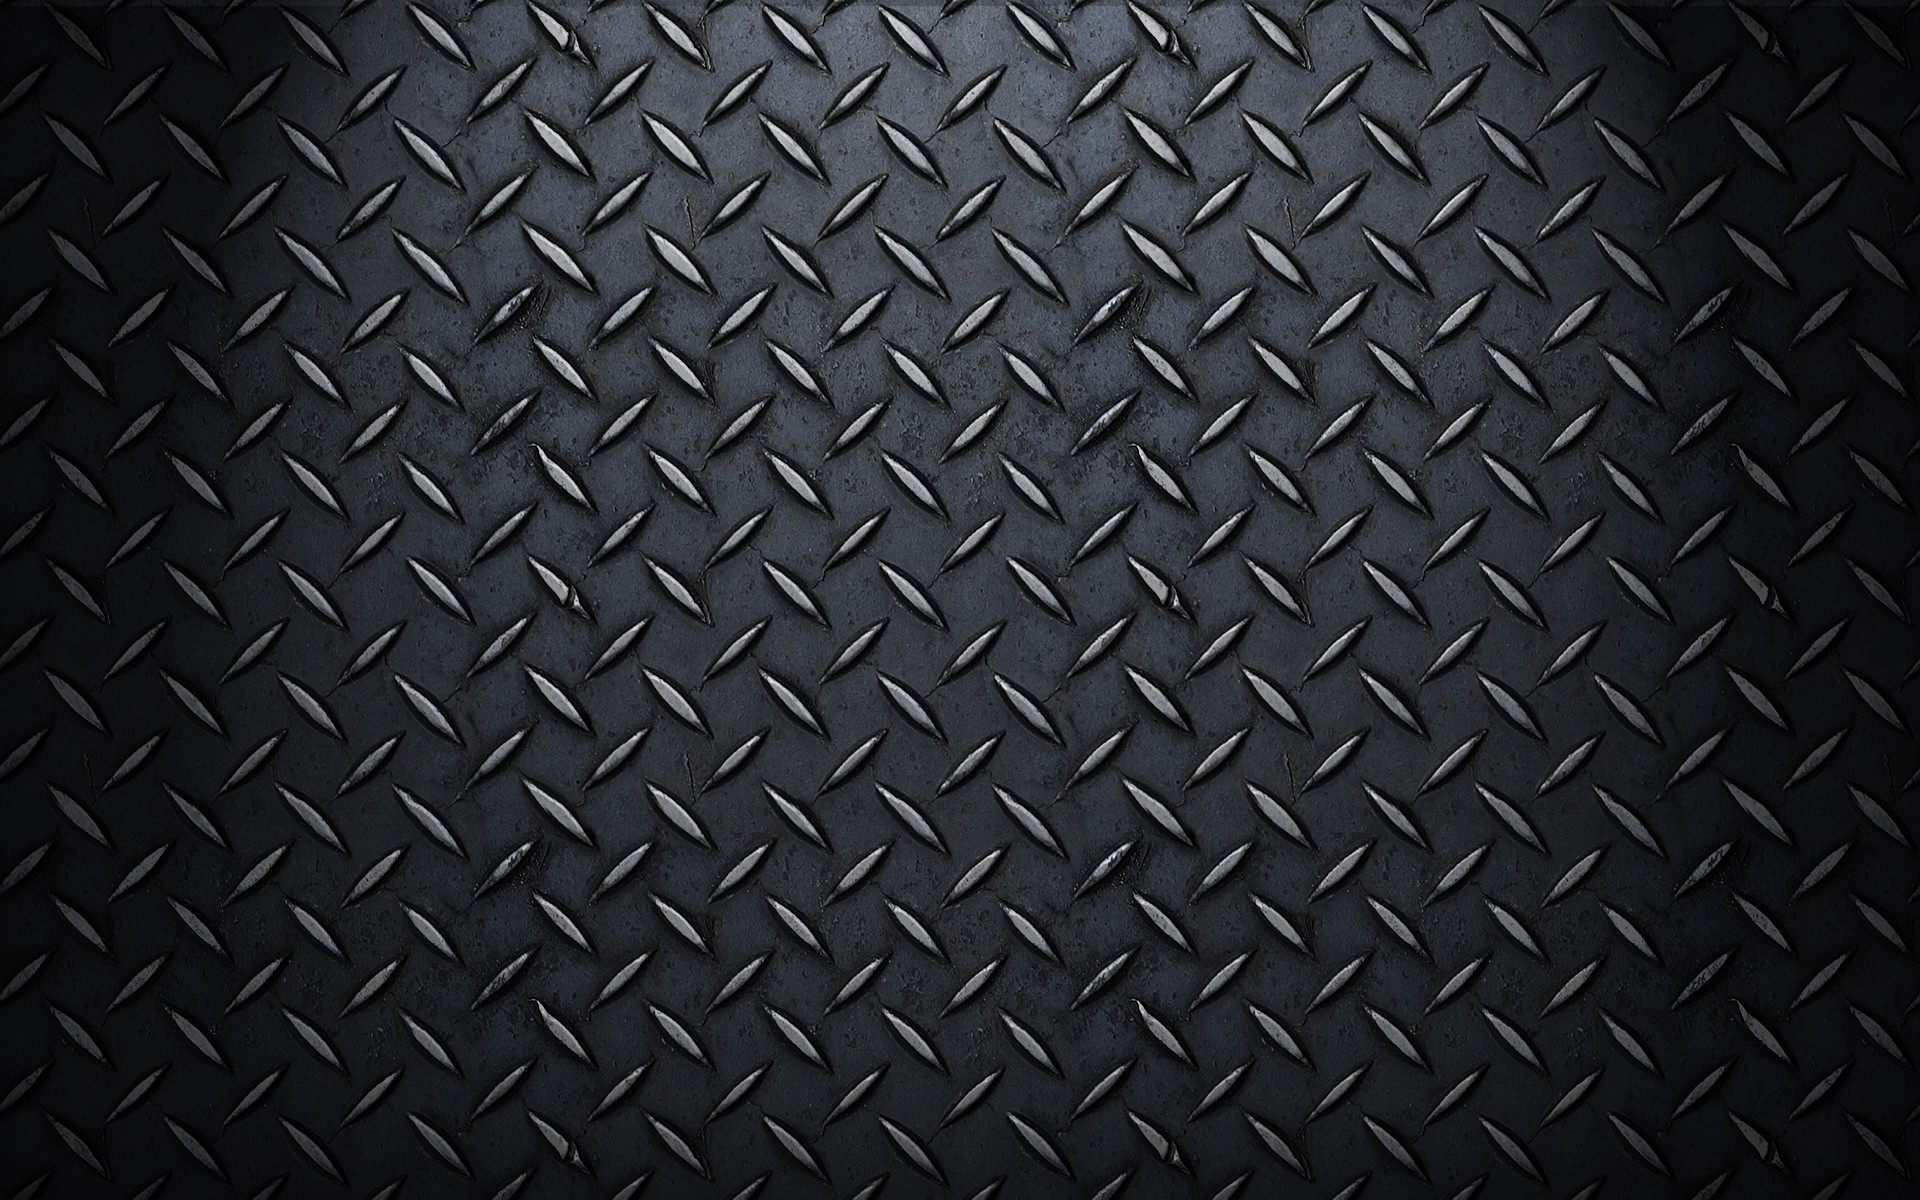 Carbon Fiber Pattern Hd Steel pattern 1920x1200 1920x1200